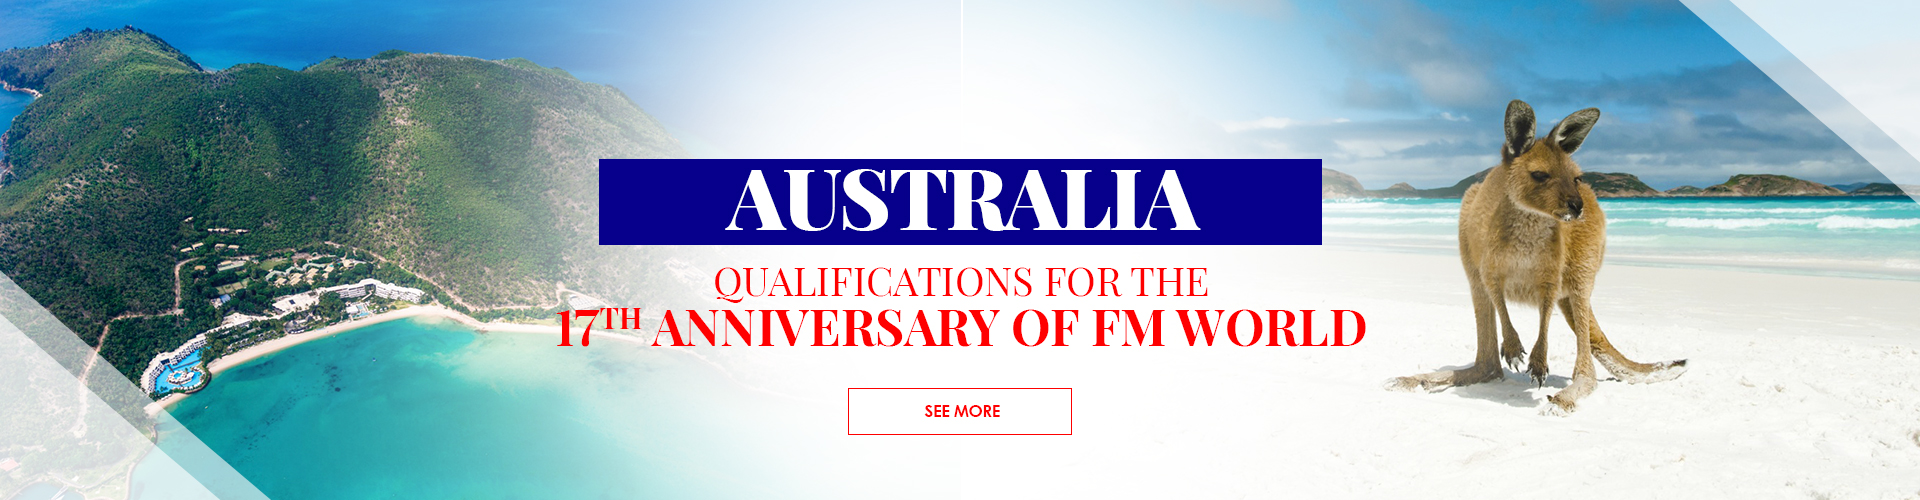 QUALIFICATIONS FOR THE 17TH ANNIVERSARY OF FM WORLD